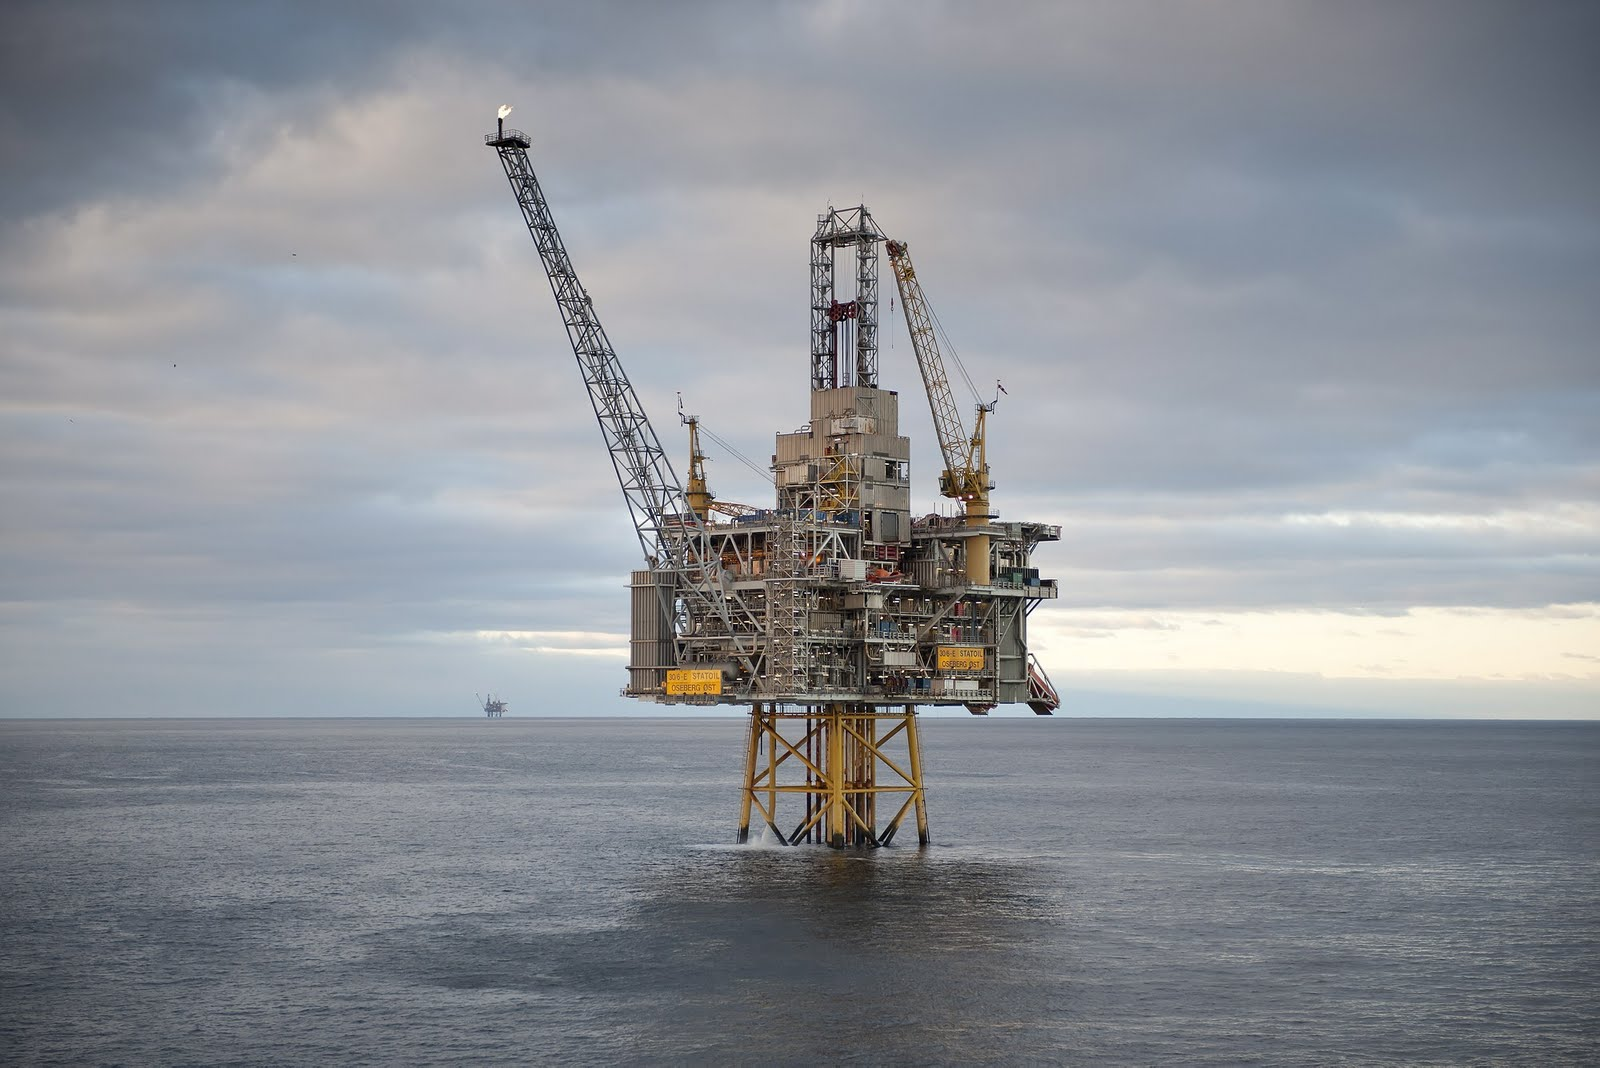 A Statoil gas rig in the Norwegian Sea